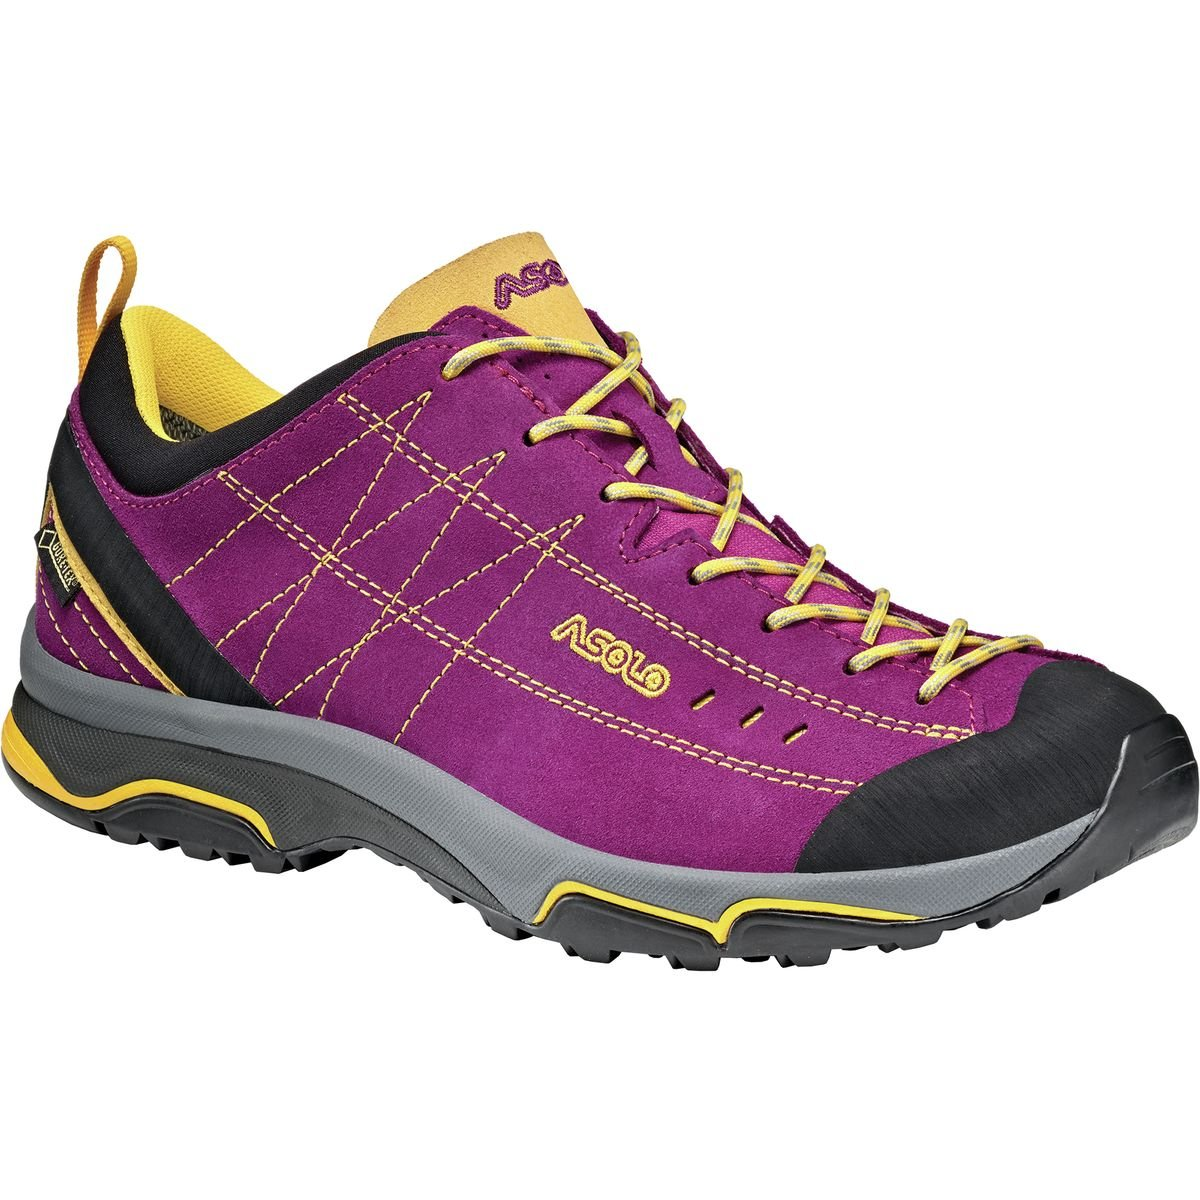 Asolo Women's Nucleon GV Hiking Shoes B00WE3V2NA 6.5 B(M) US|Verbena/Yellow